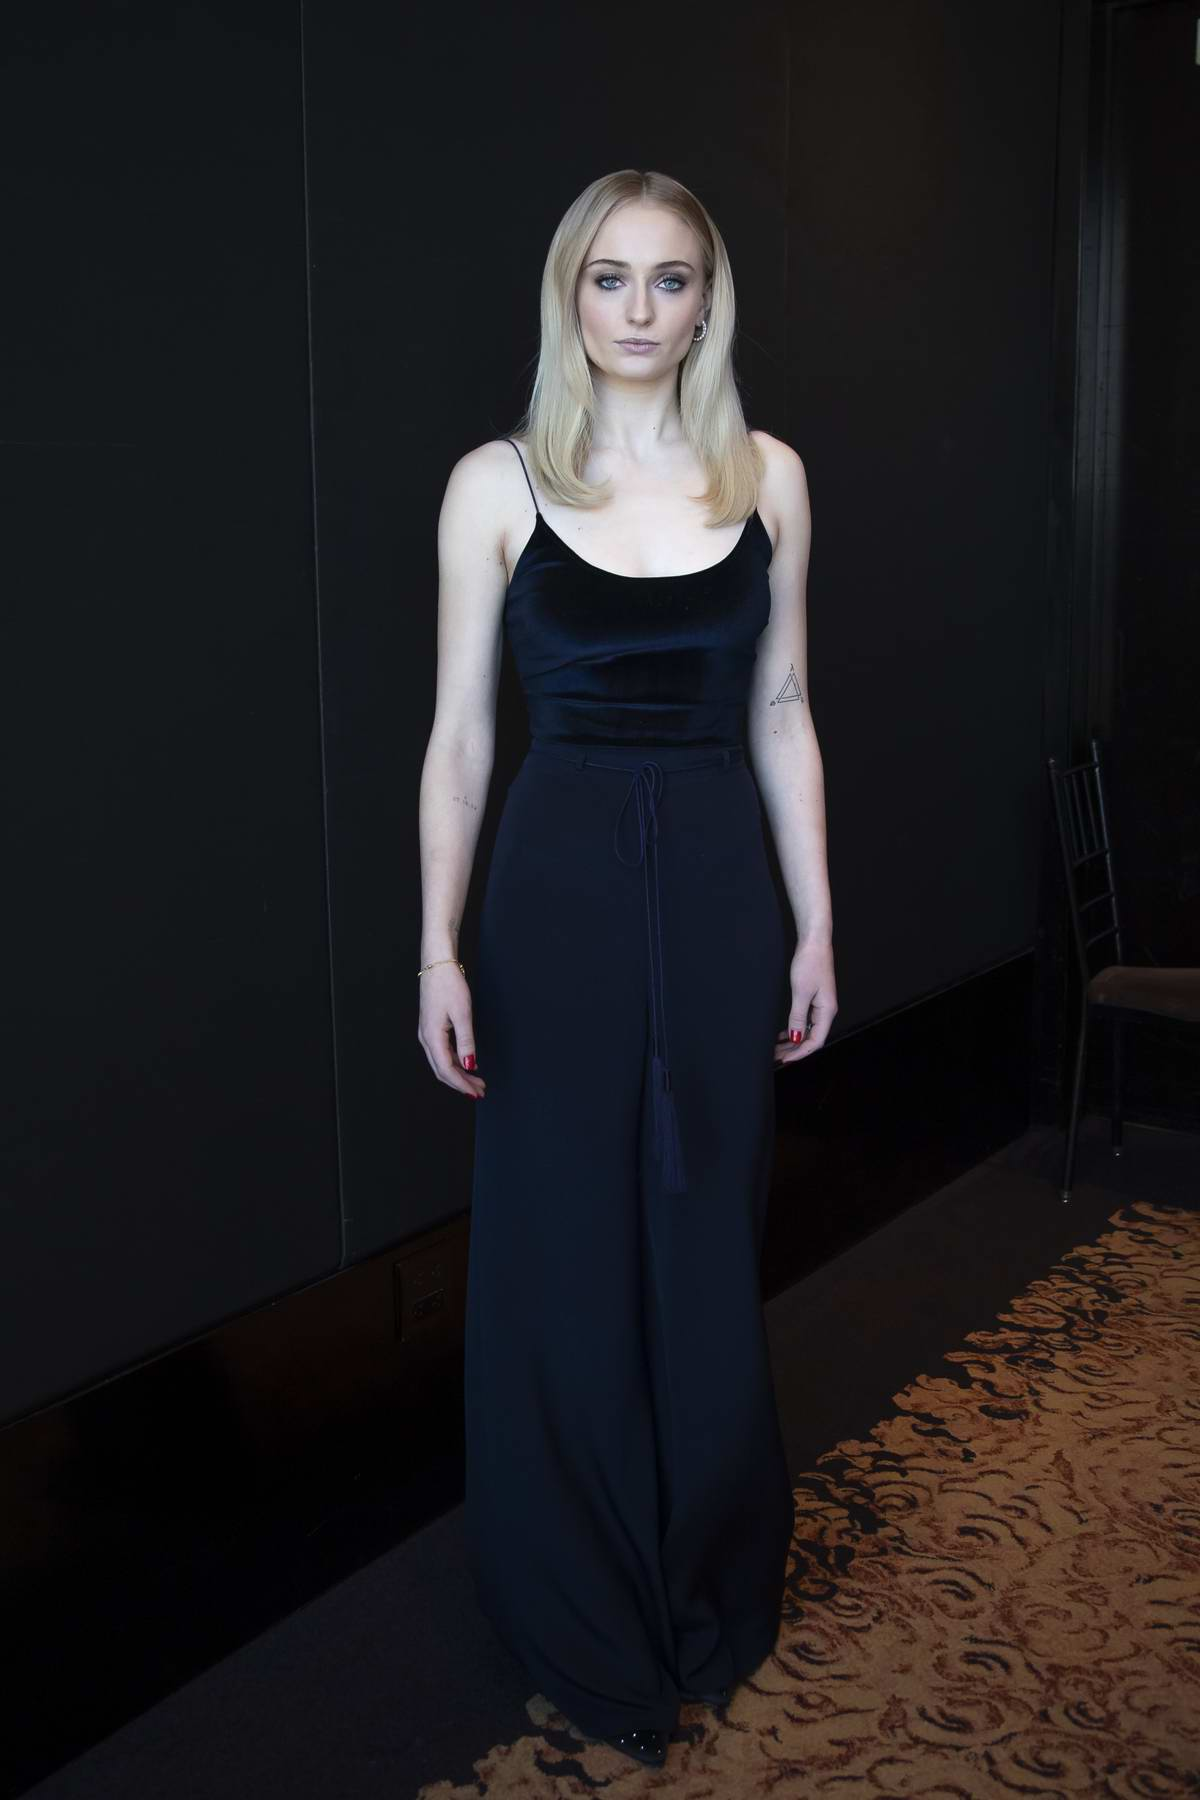 Sophie Turner attends Game Of Thrones Press Conference and Photocall at the Mandarin Oriental Hotel, New York City